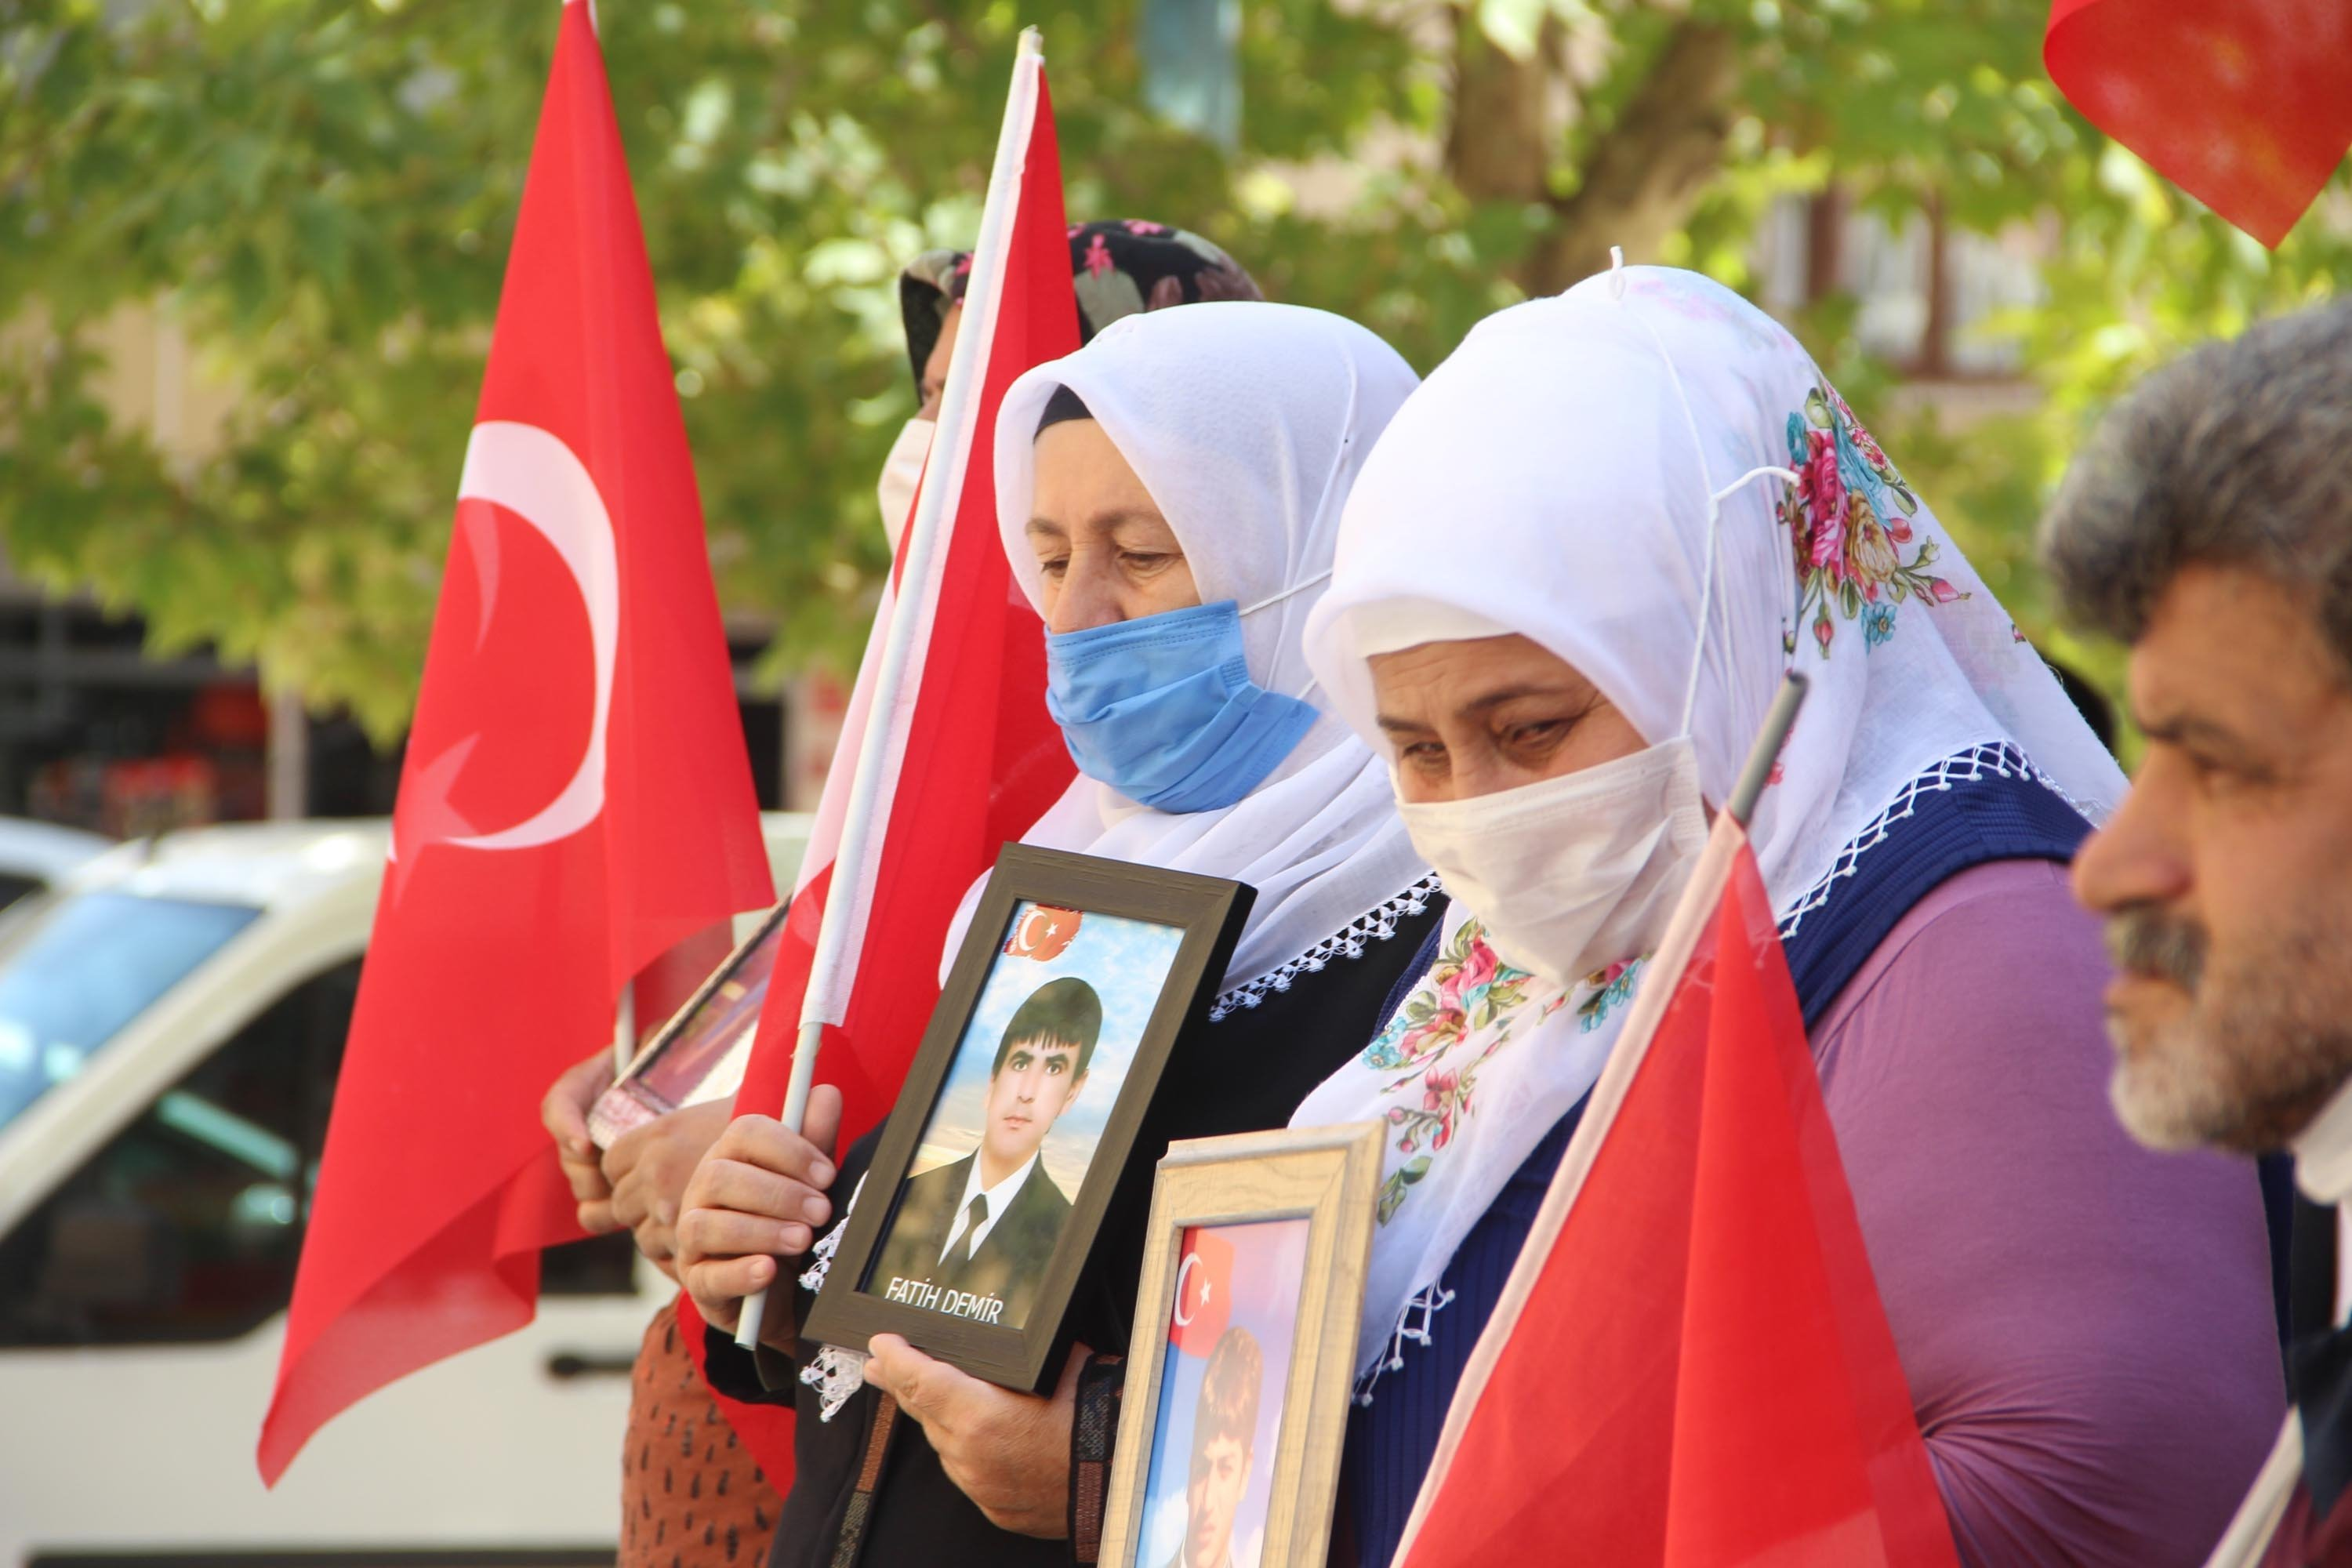 Family members of the 233 people who were kidnapped by the PKK terrorist group protest for 714 days straight in Diyarbakır, southeastern Turkey, Aug. 16, 2021. (DHA Photo)